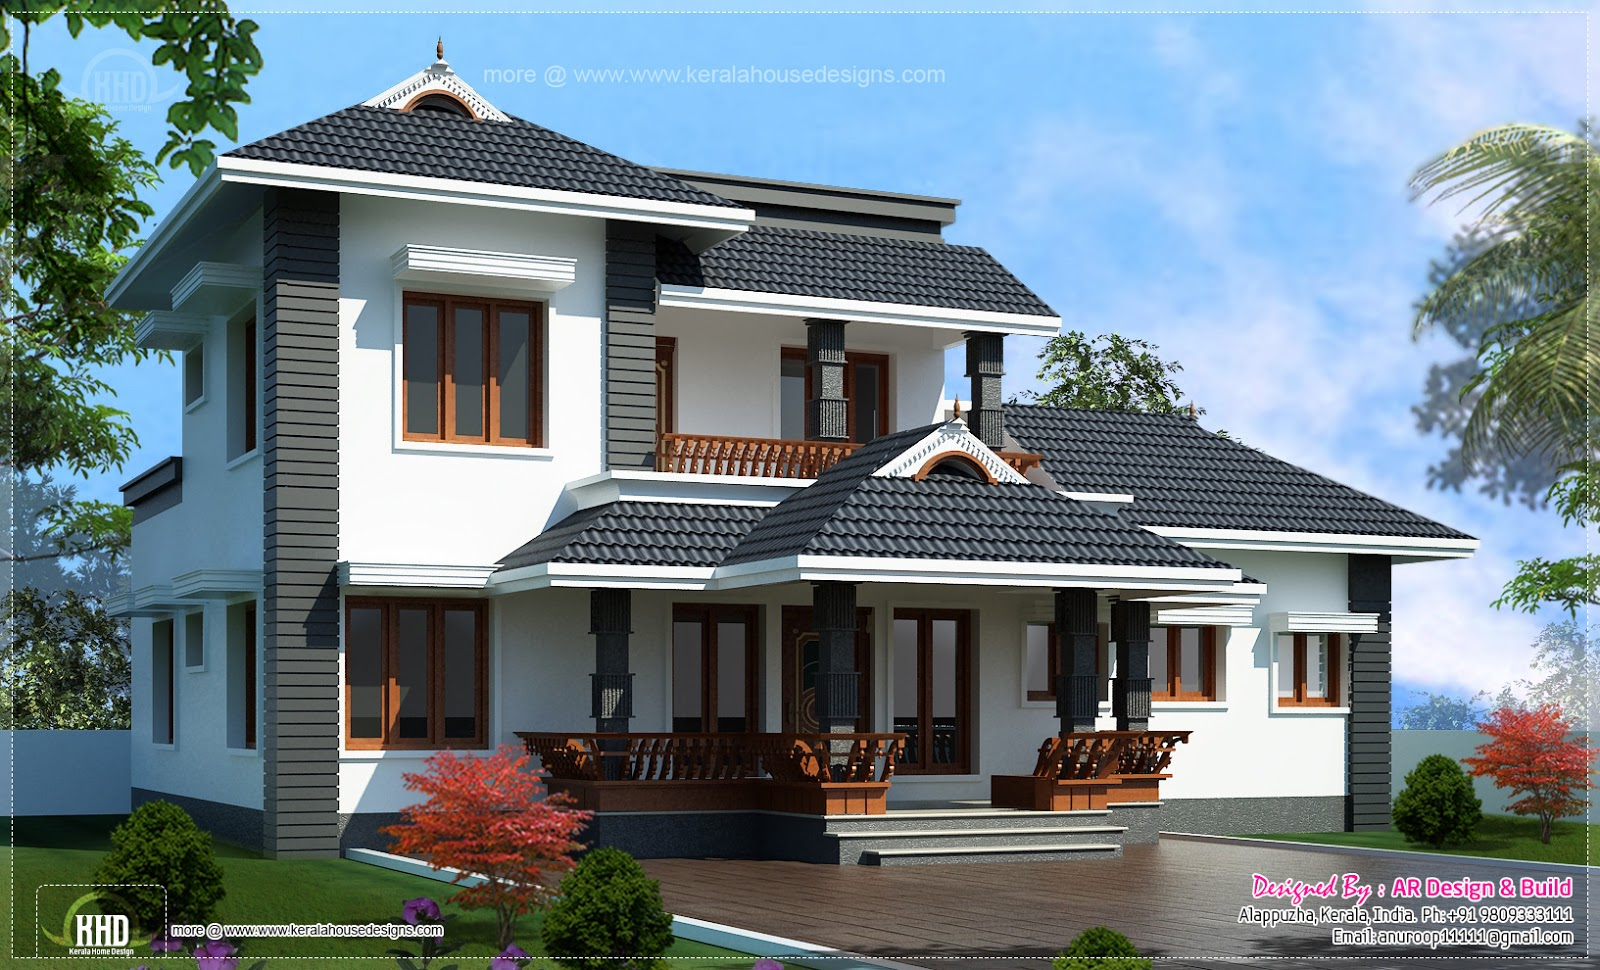 2000 4 bedroom sloping roof residence kerala for House plan for 2000 sq ft in india